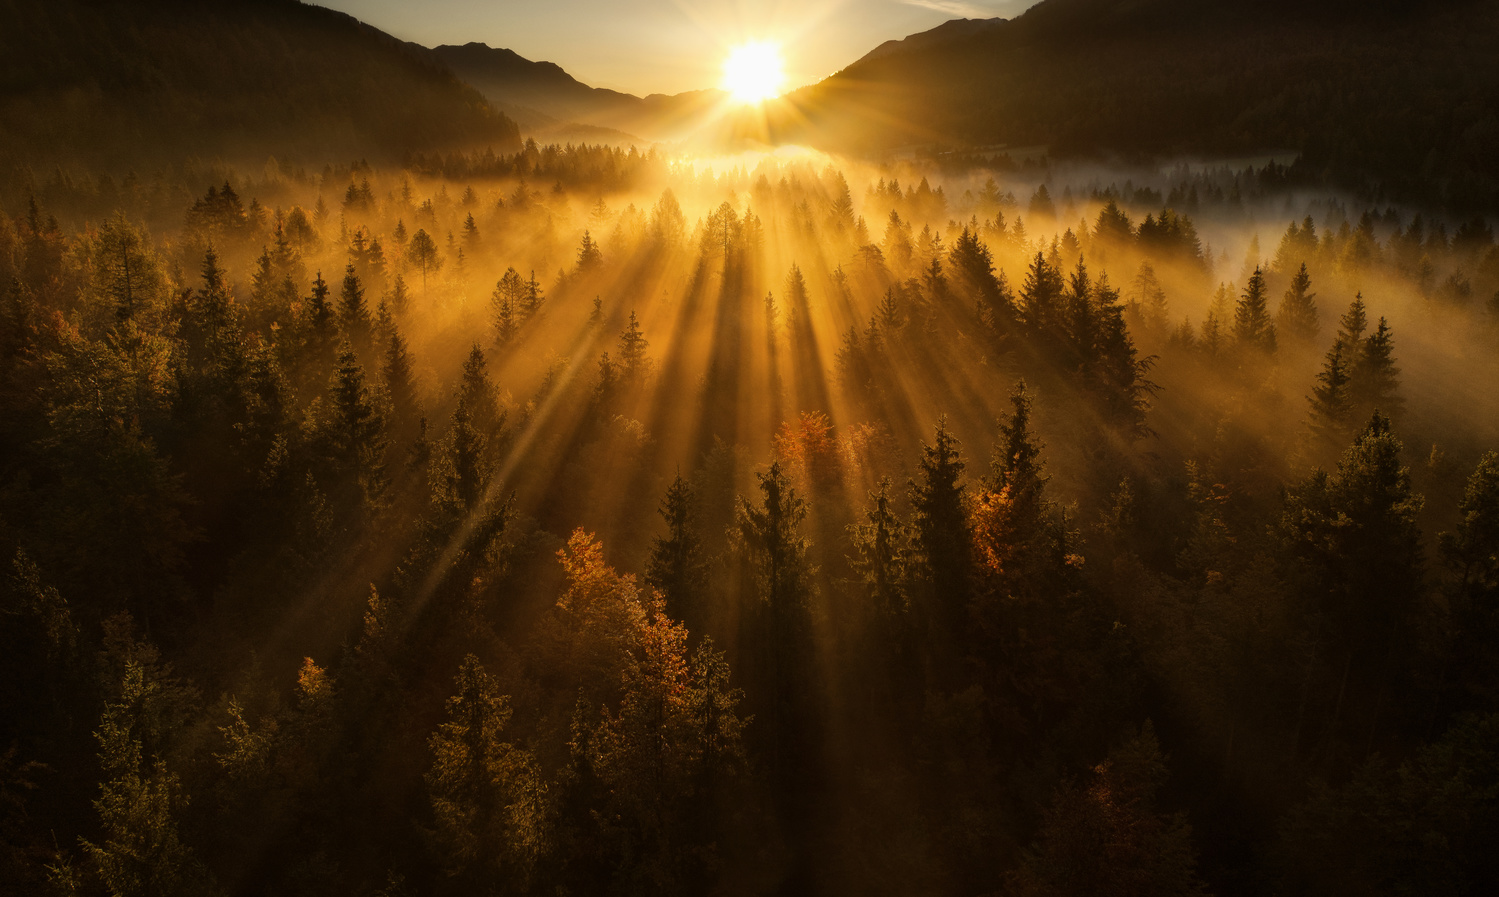 Aerial shot of an autumn forest by Ales Krivec